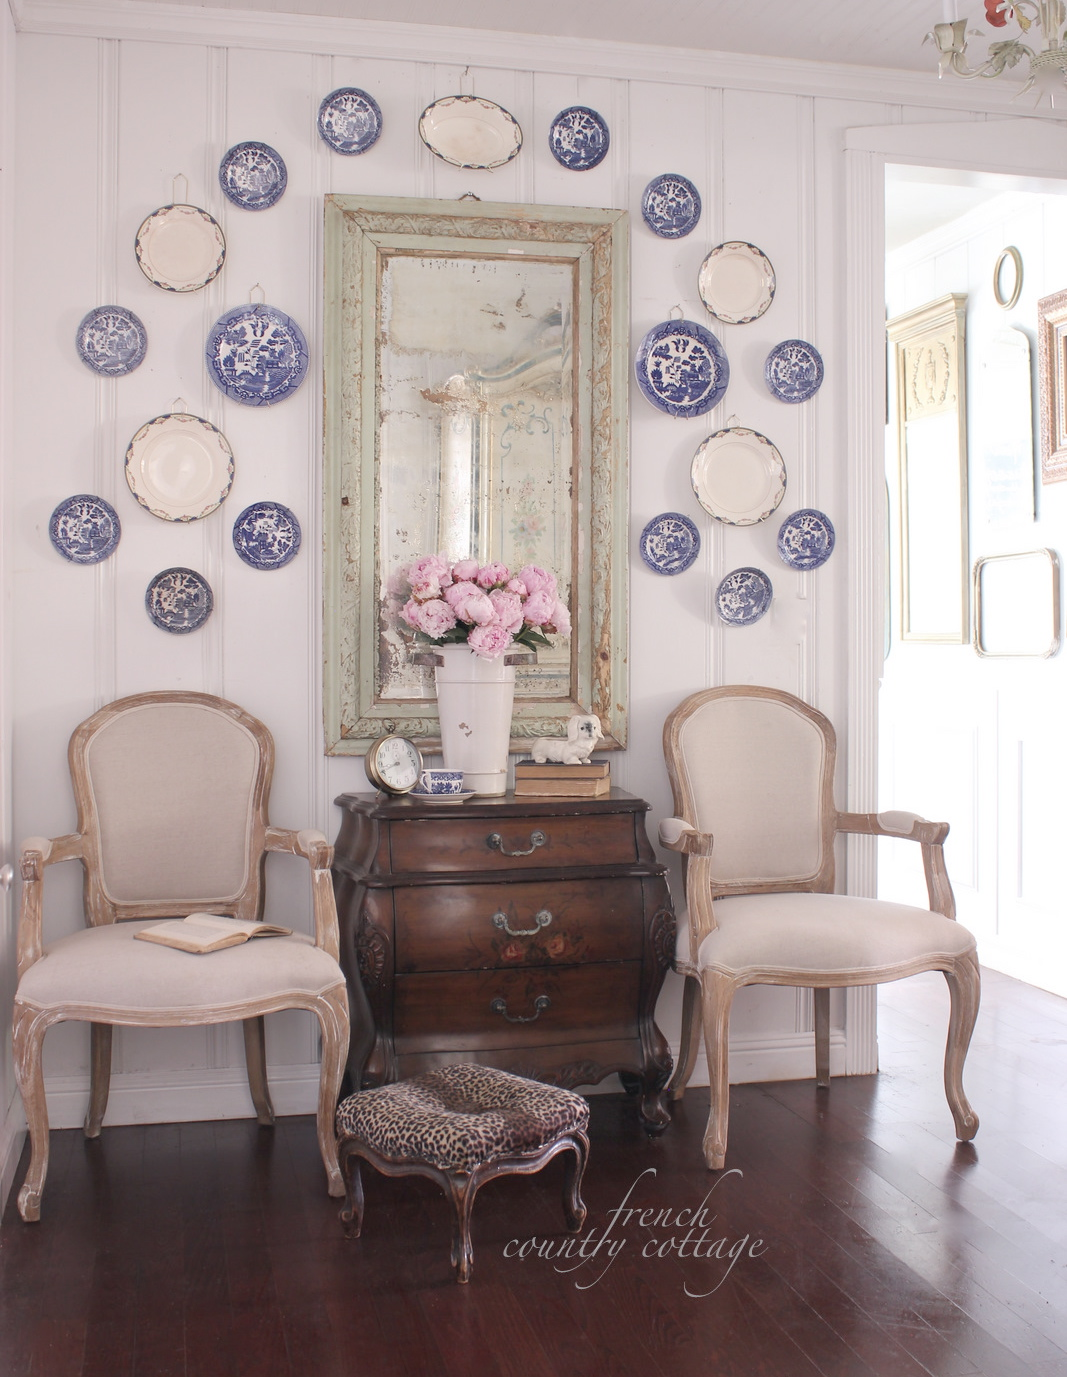 Friday Favorite French Country Cottage Blog Starfish Cottage - French country cottage blog